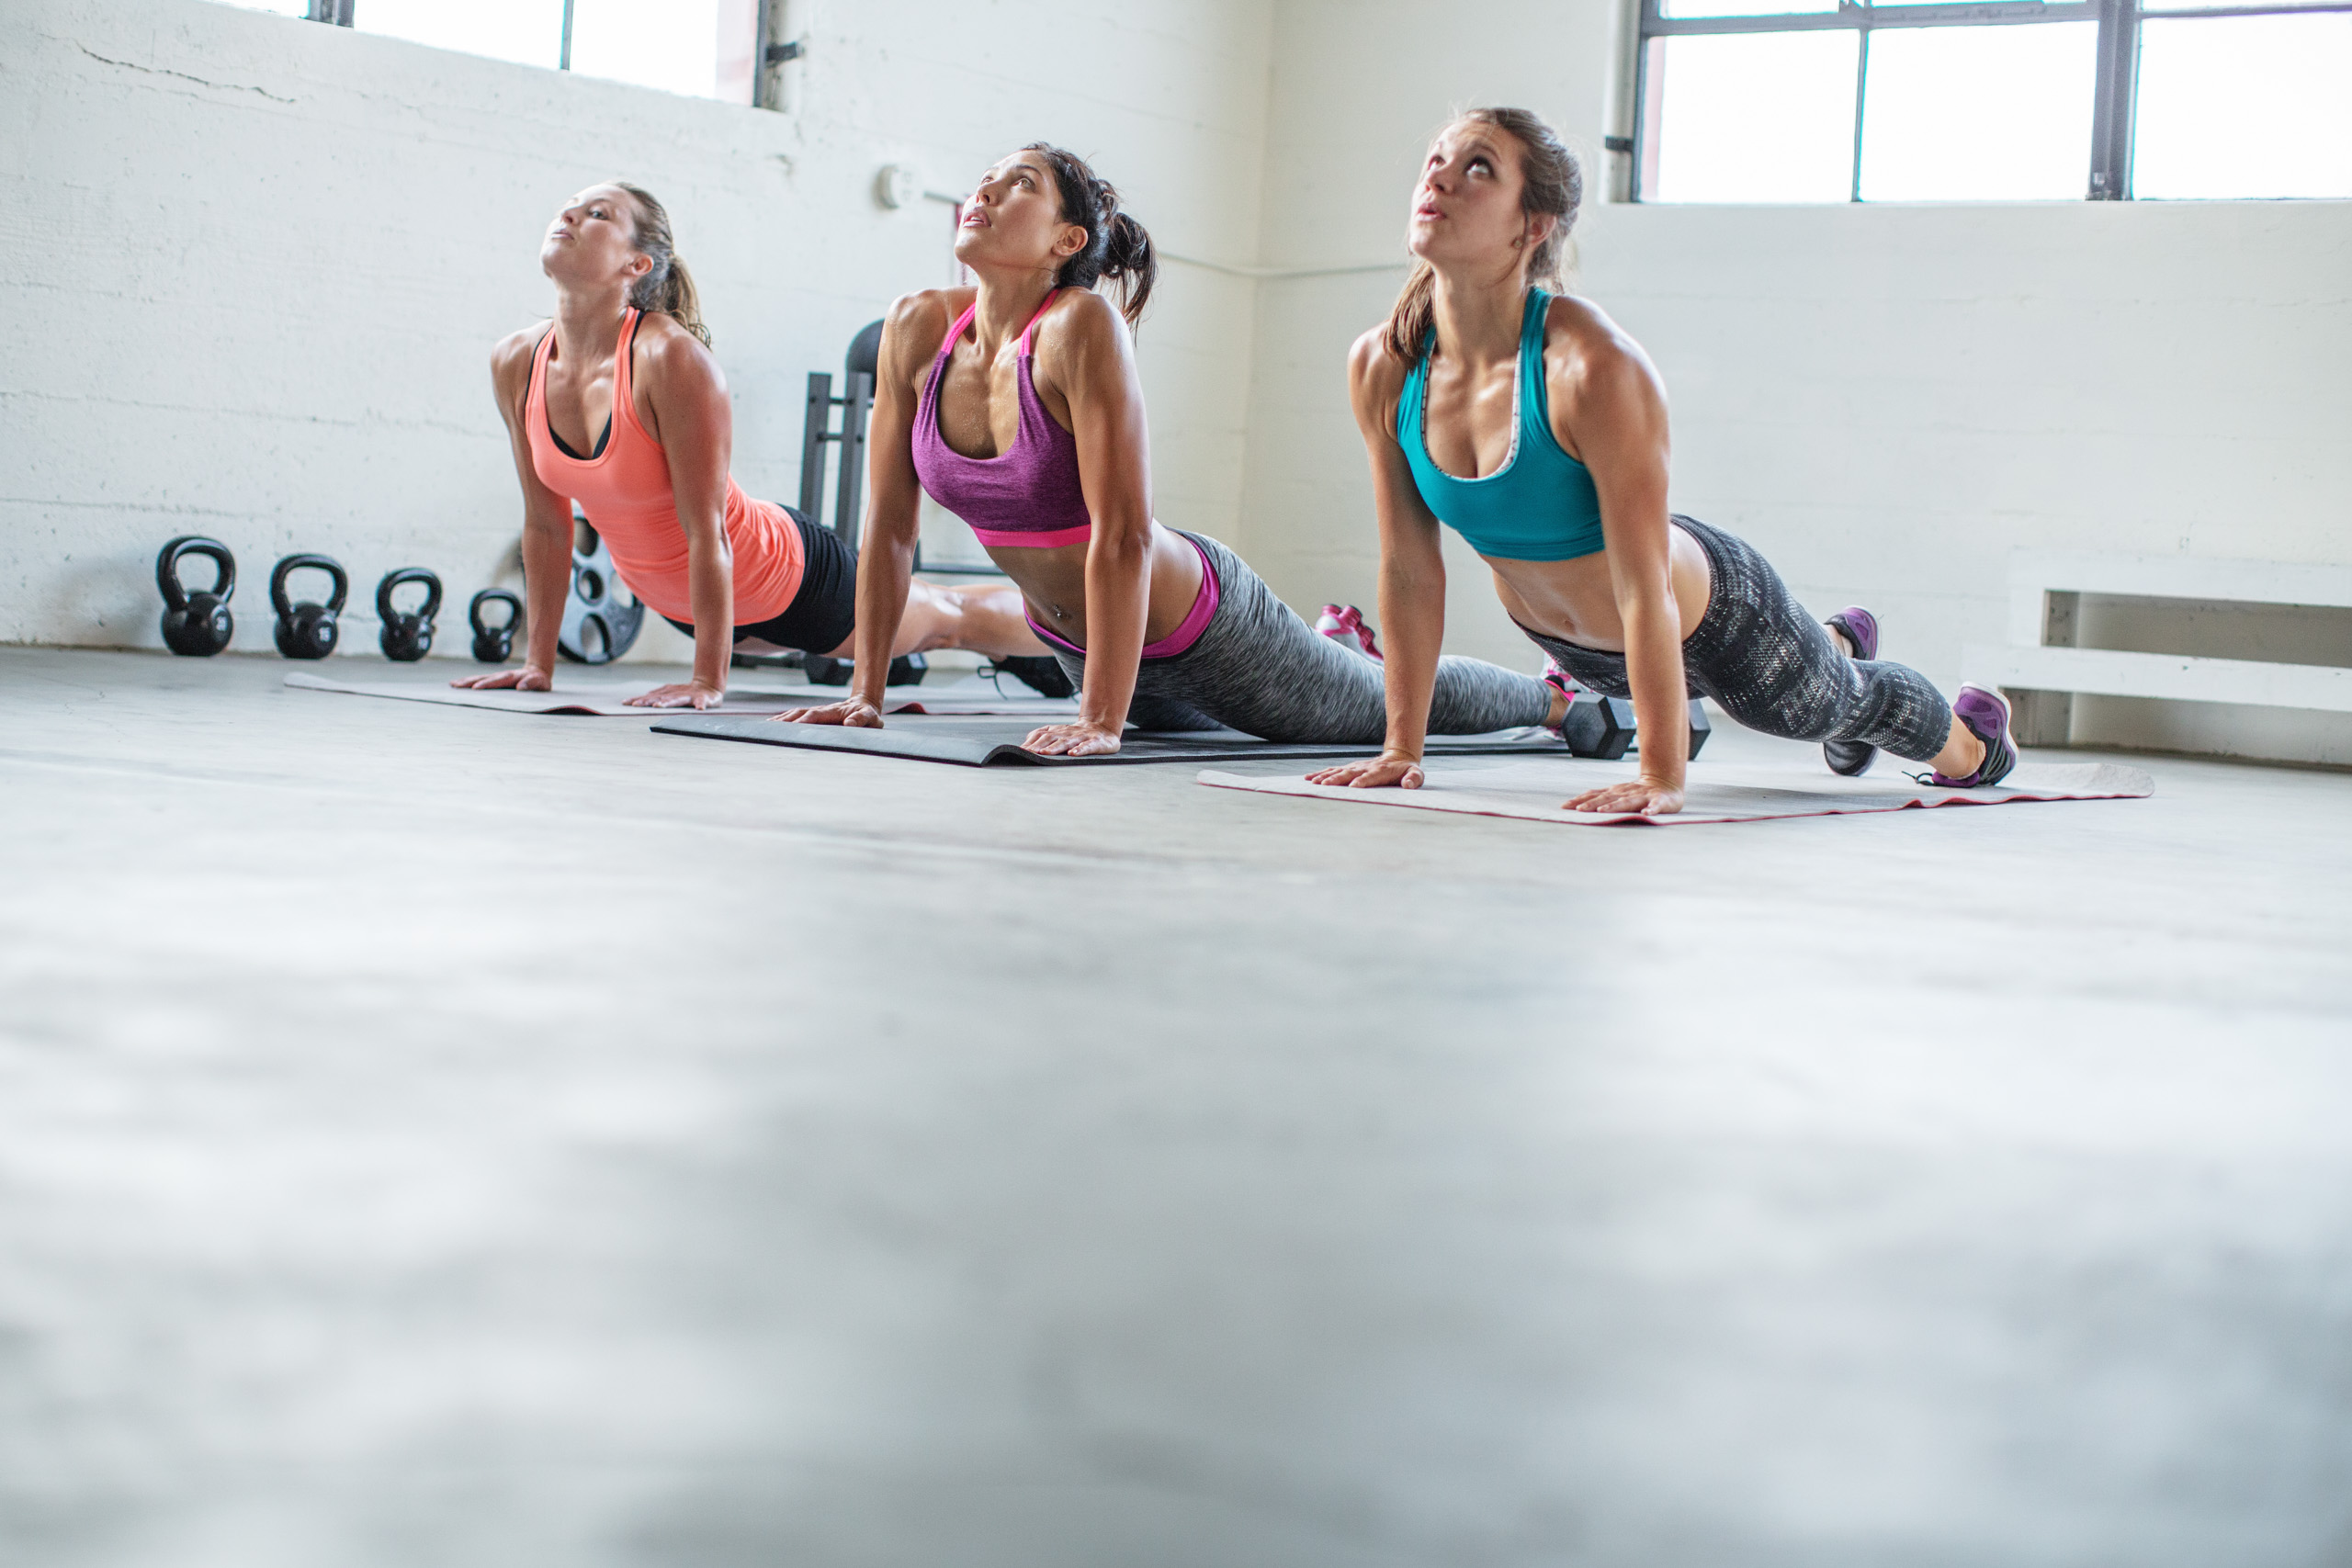 Three women on mats doing yoga